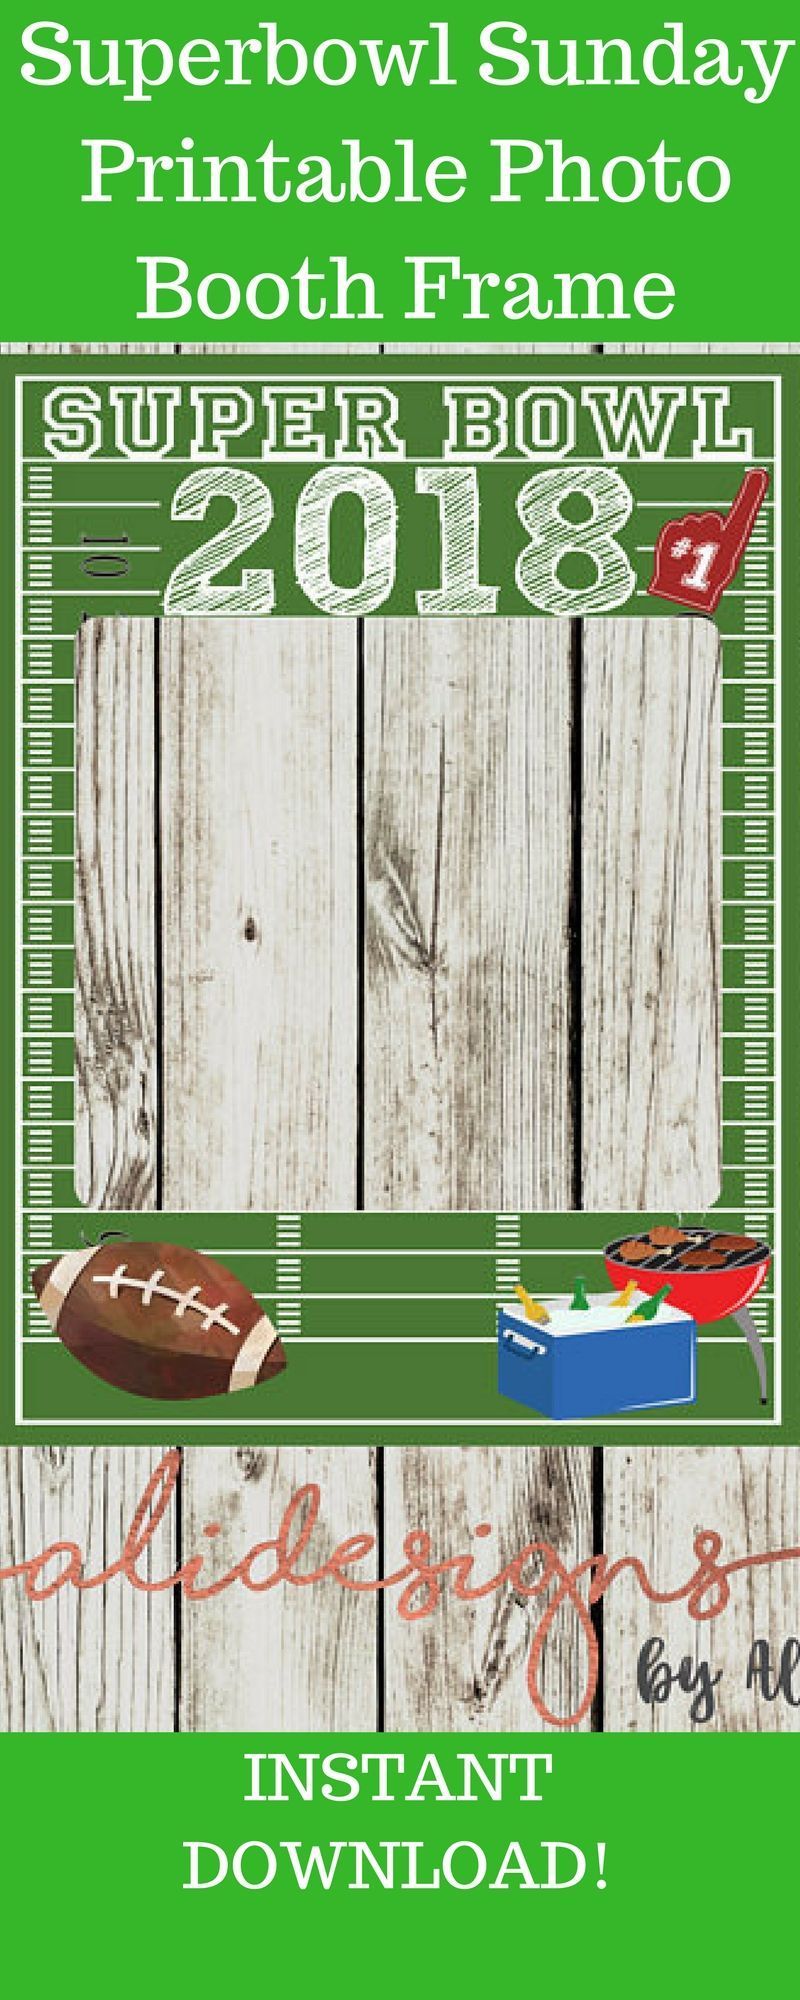 Printable photo booth frame super bowl super bowl party sports party football bb…